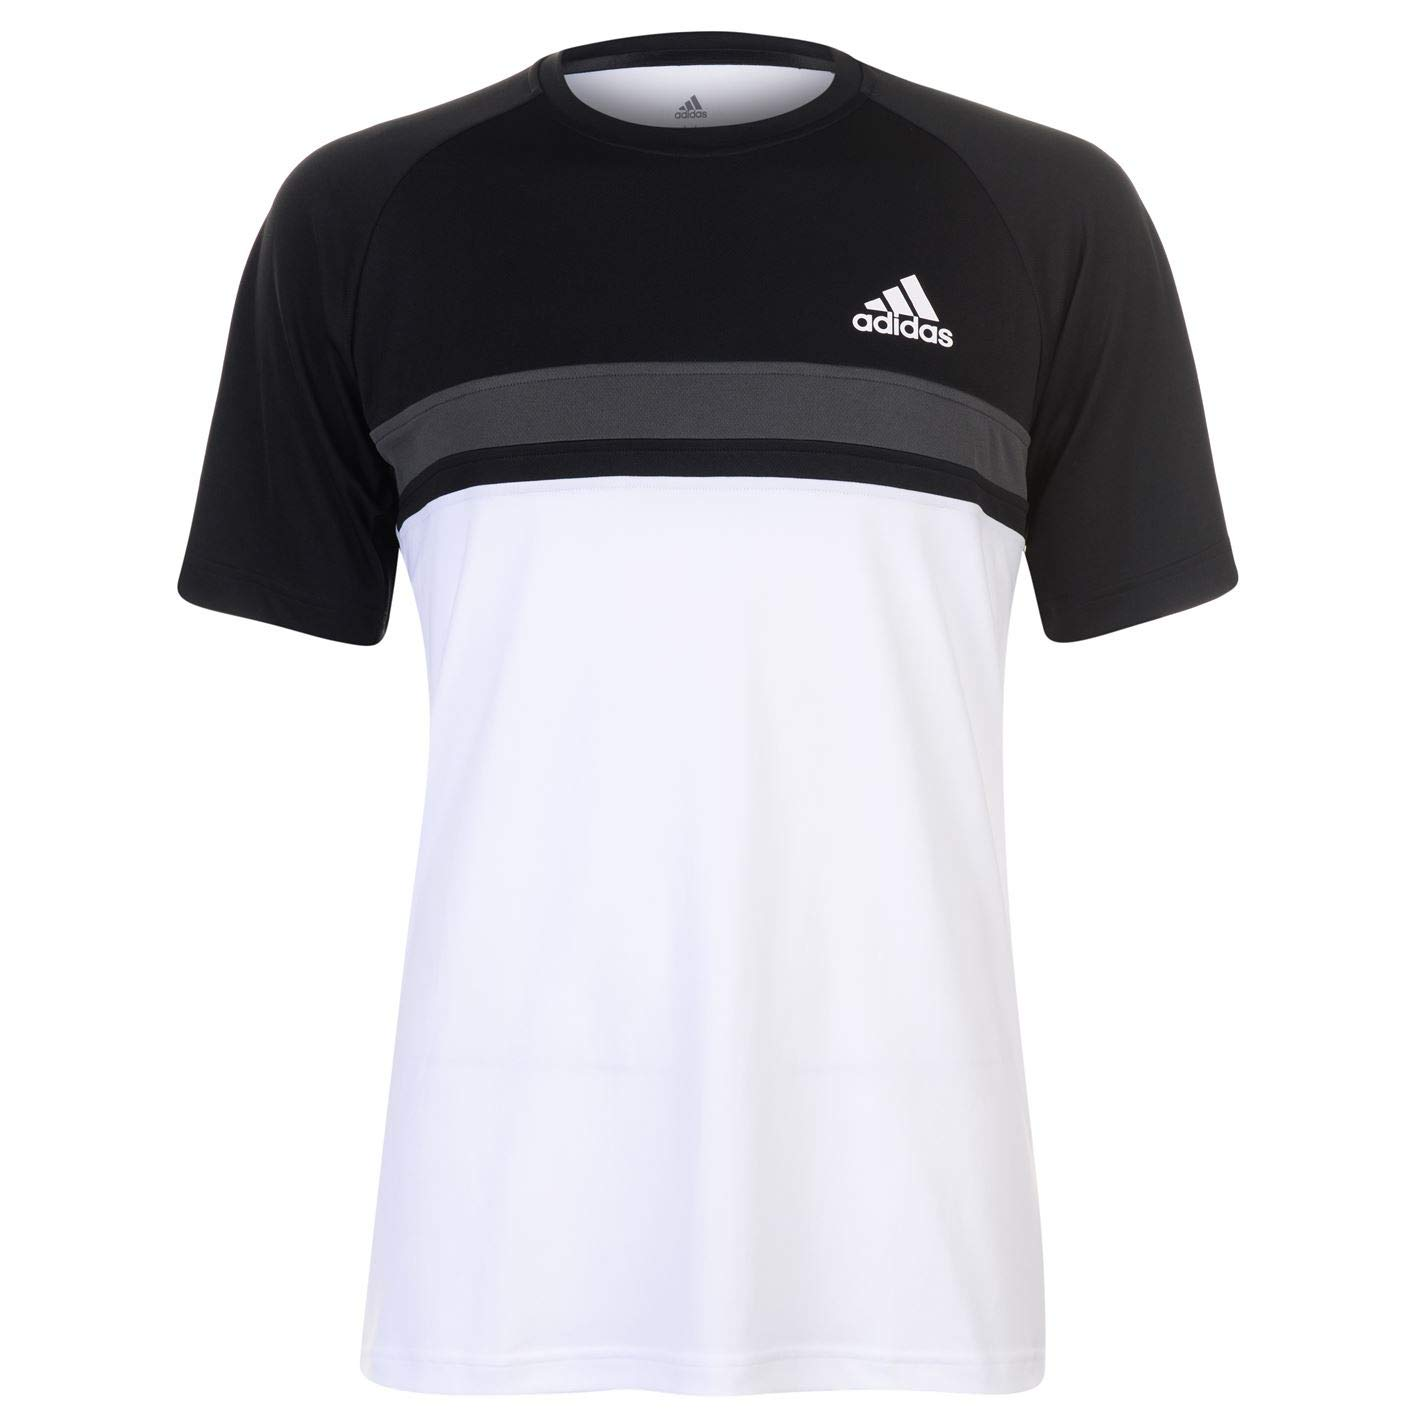 9f0590a757d adidas Men's Club T-Shirt, Men, CE1426: Amazon.co.uk: Clothing